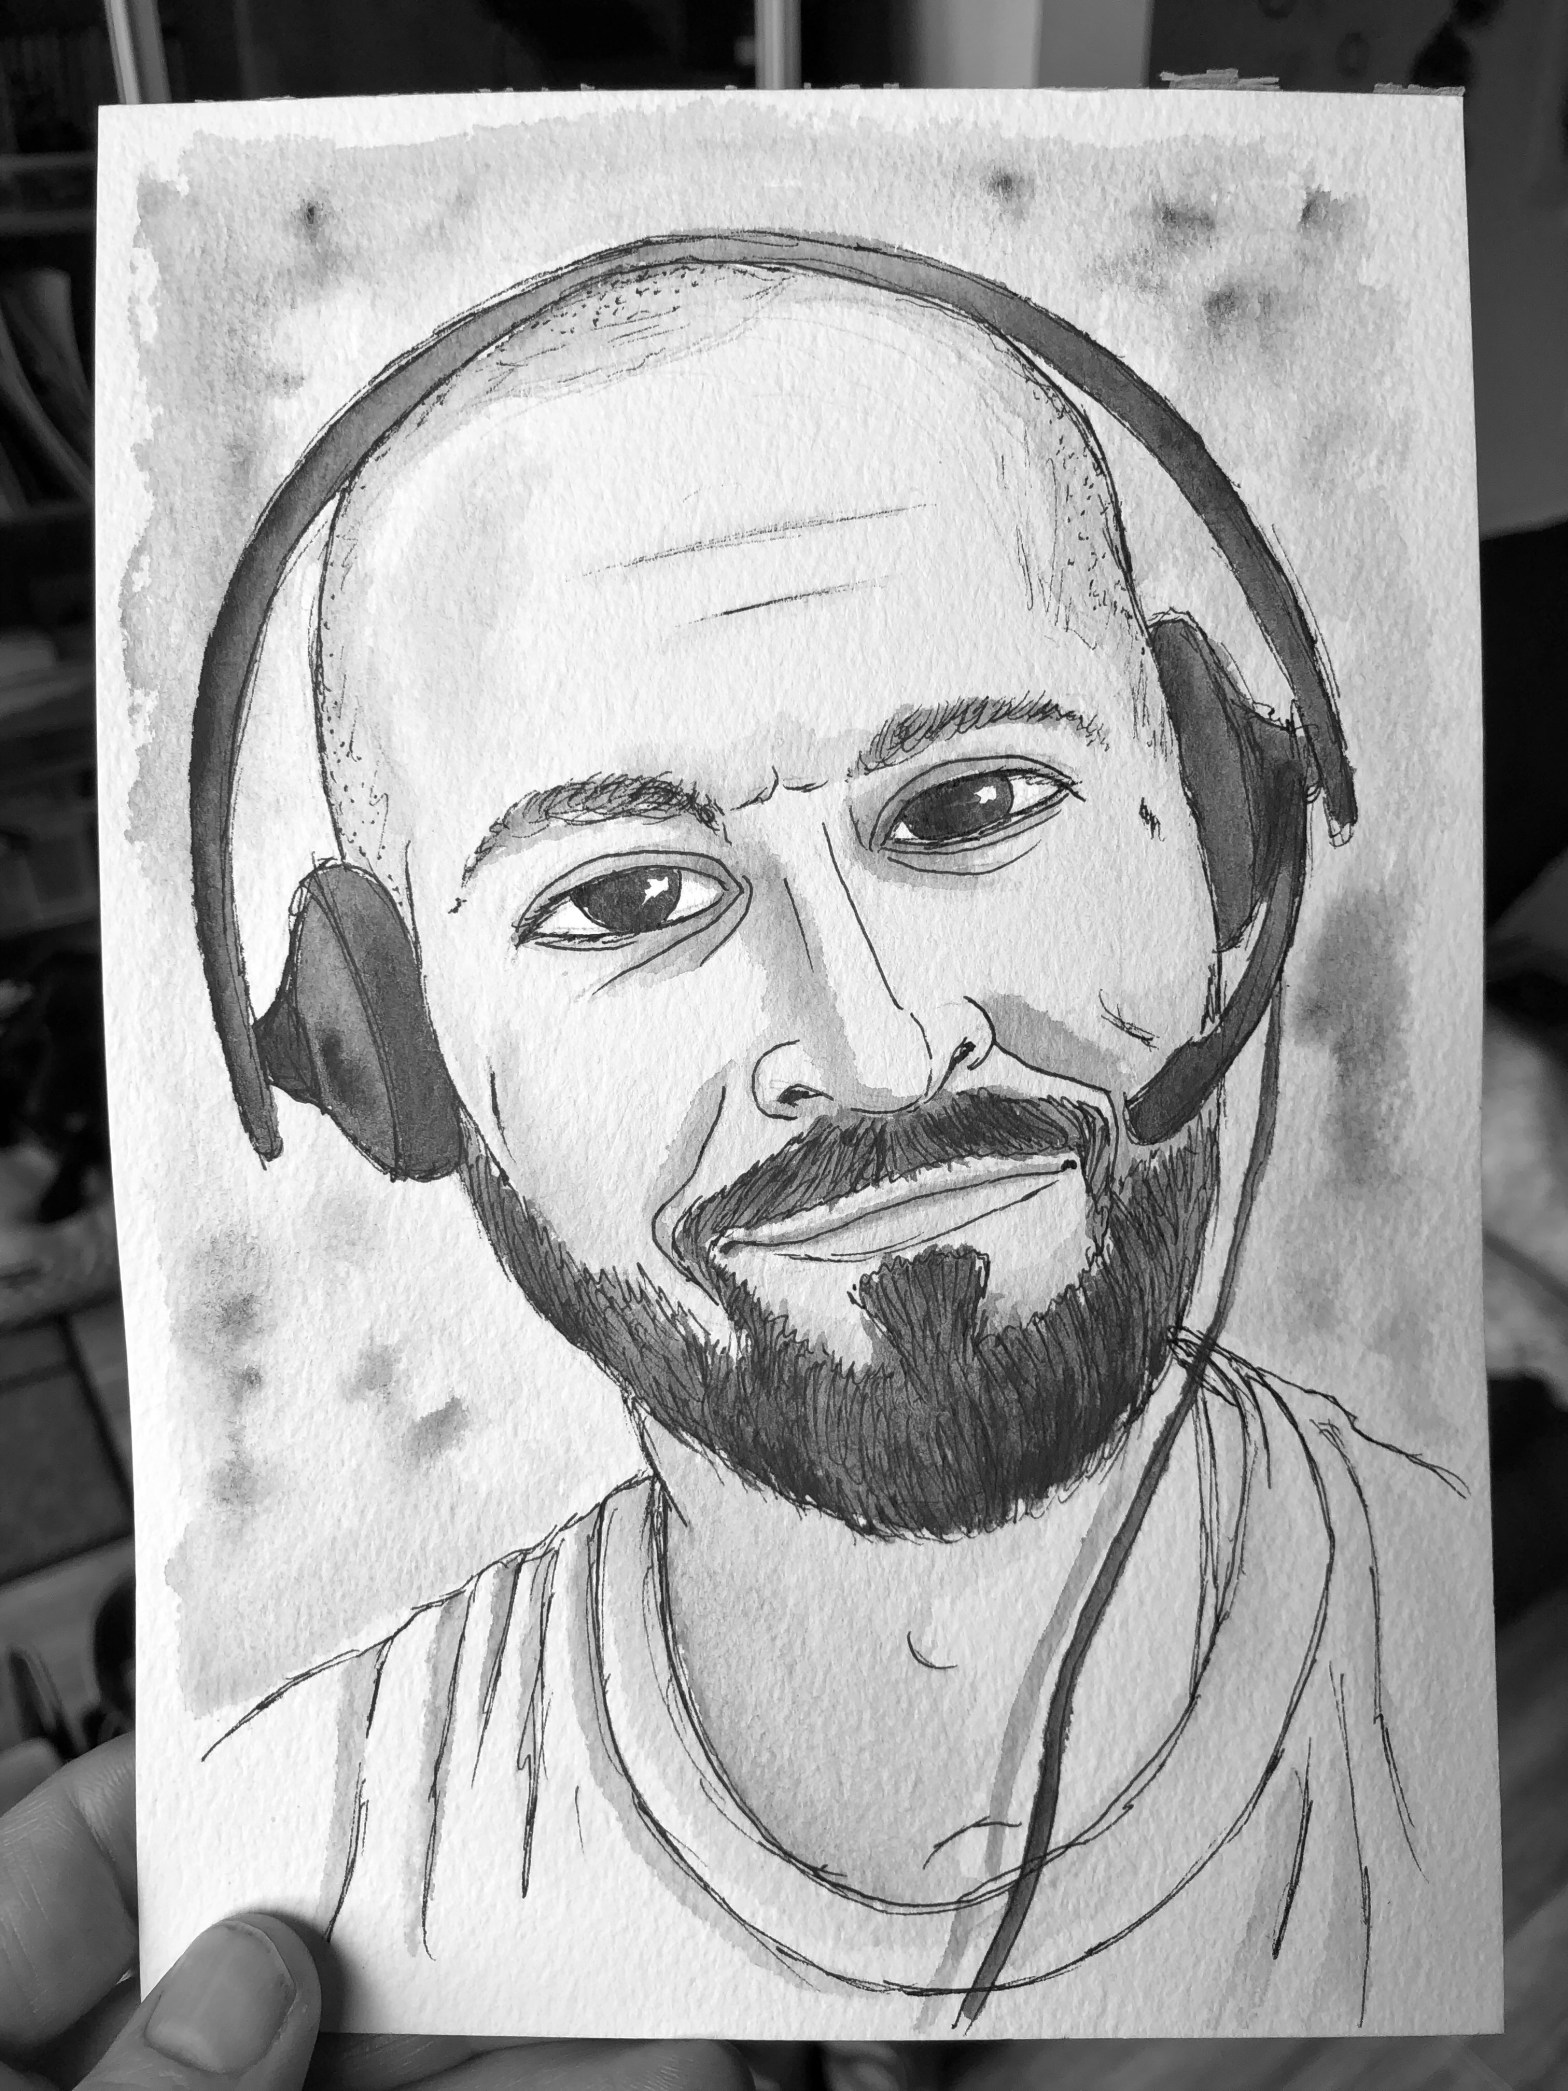 Watercolor and pen portrait of man with bald head and headset smiling.